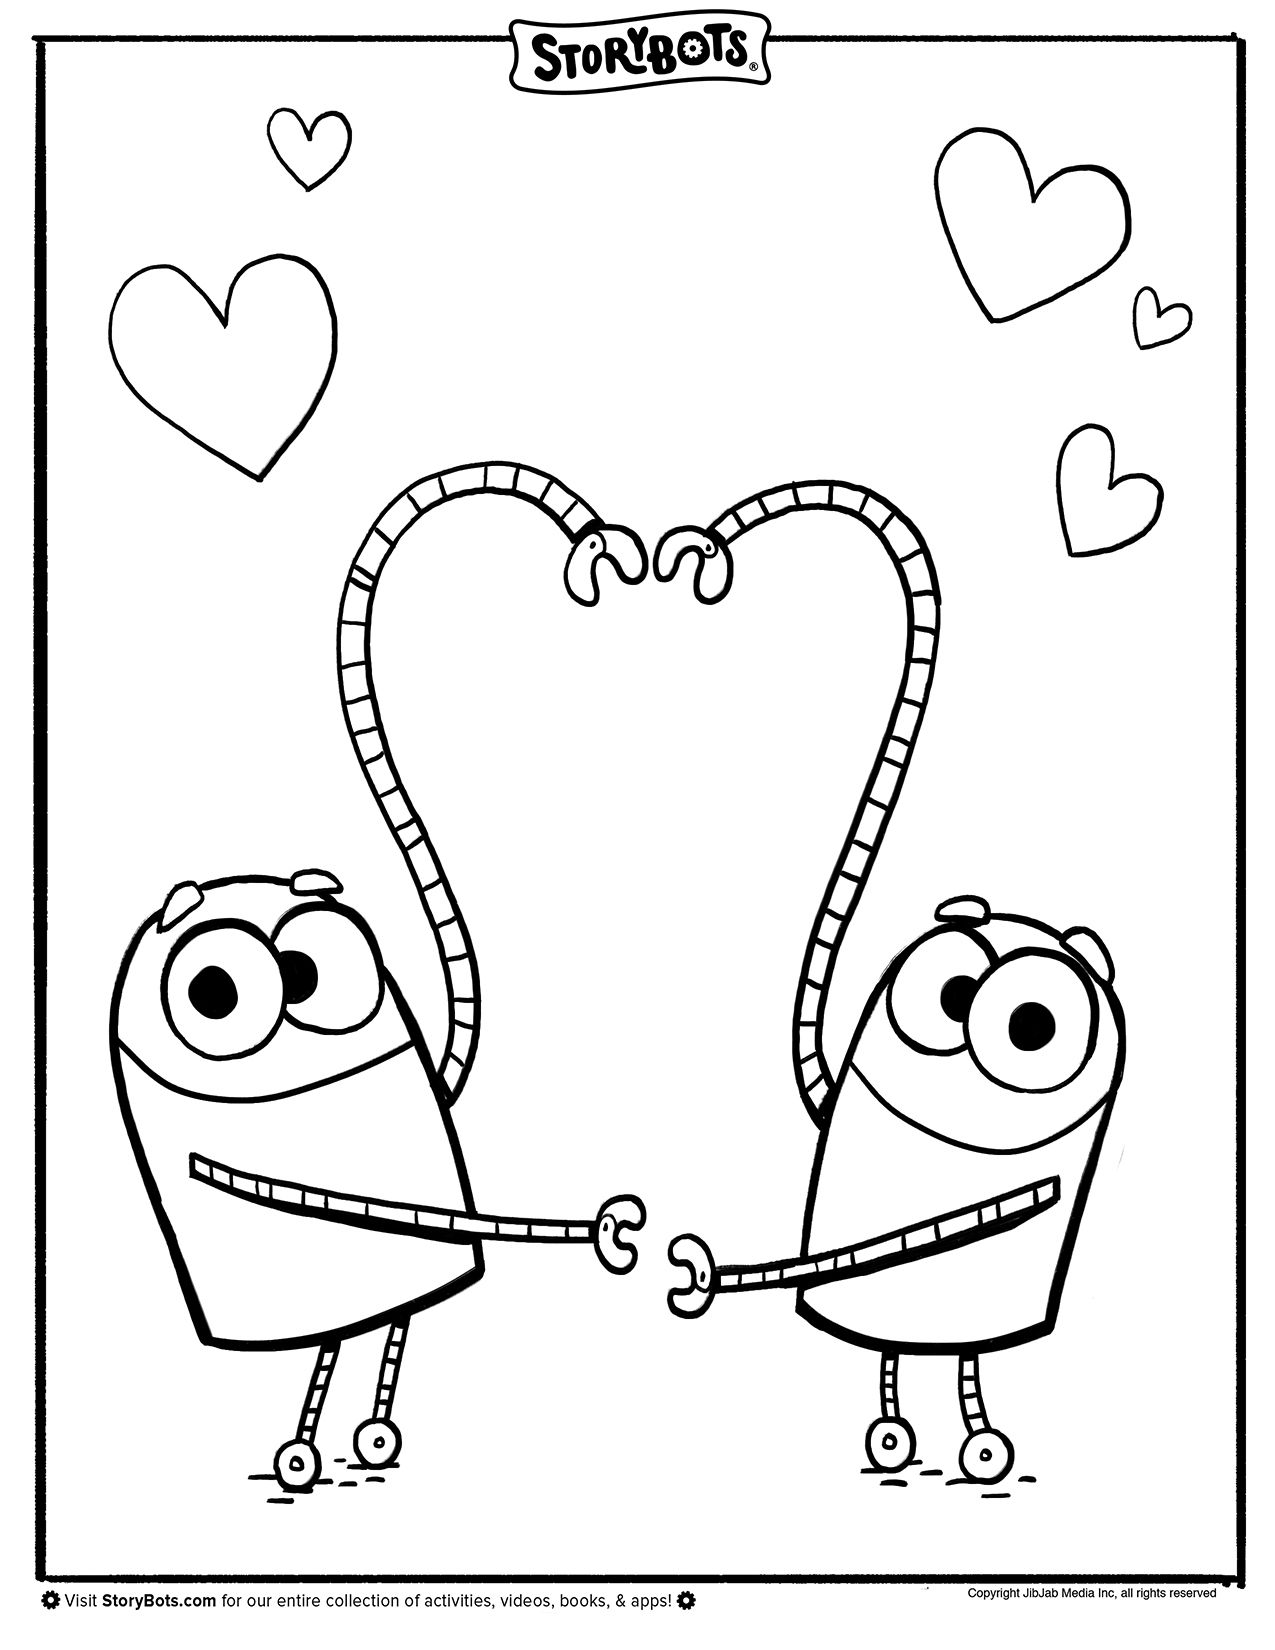 Heart Storybots Coloring Page